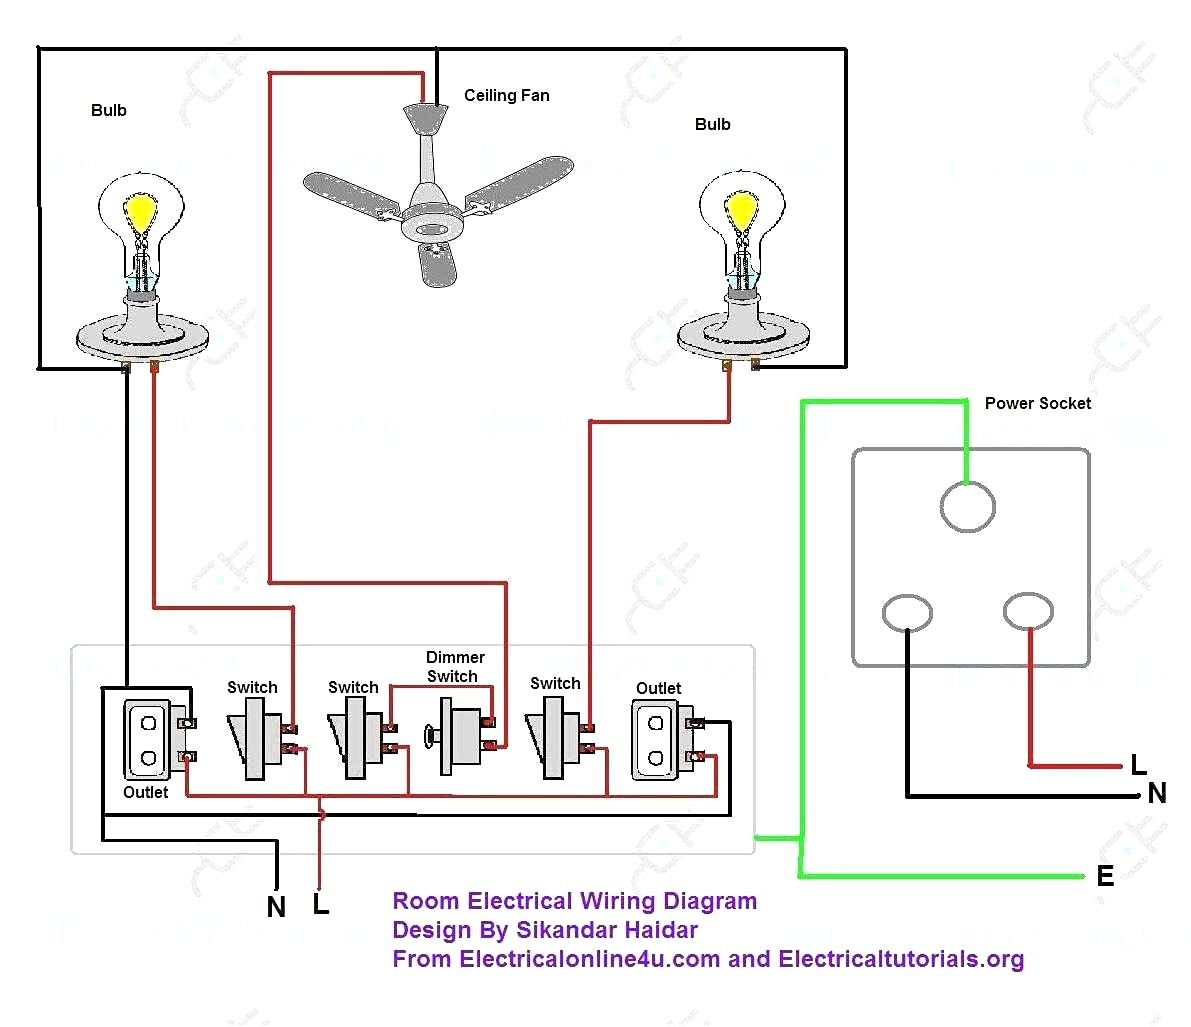 21 Good Electrical Wiring Diagrams For Dummies Pdf Technique Https Bacamajalah Com 21 Good Electrical Home Electrical Wiring House Wiring Electrical Wiring